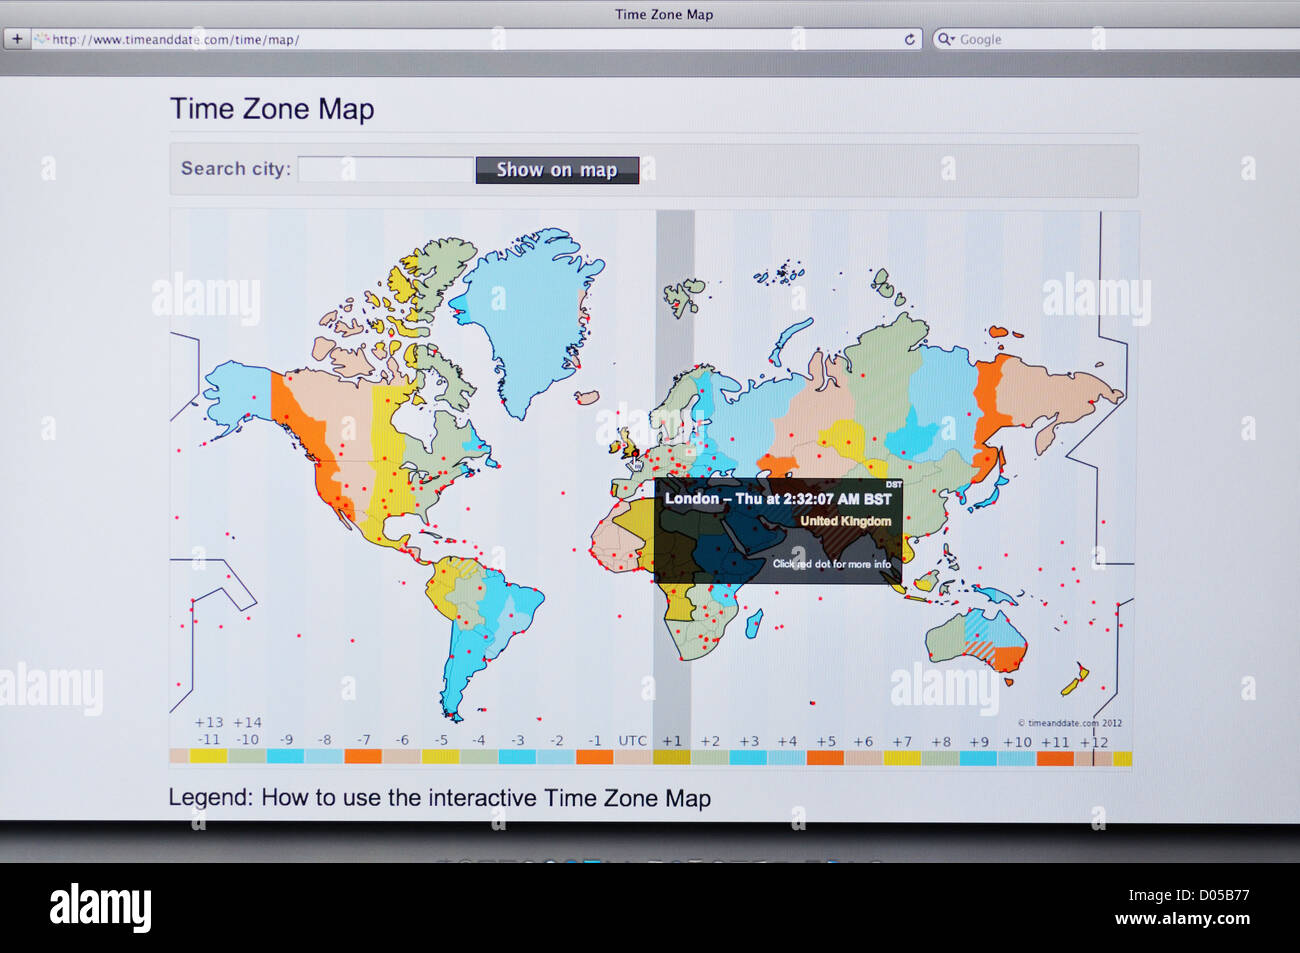 interactive time zone map website